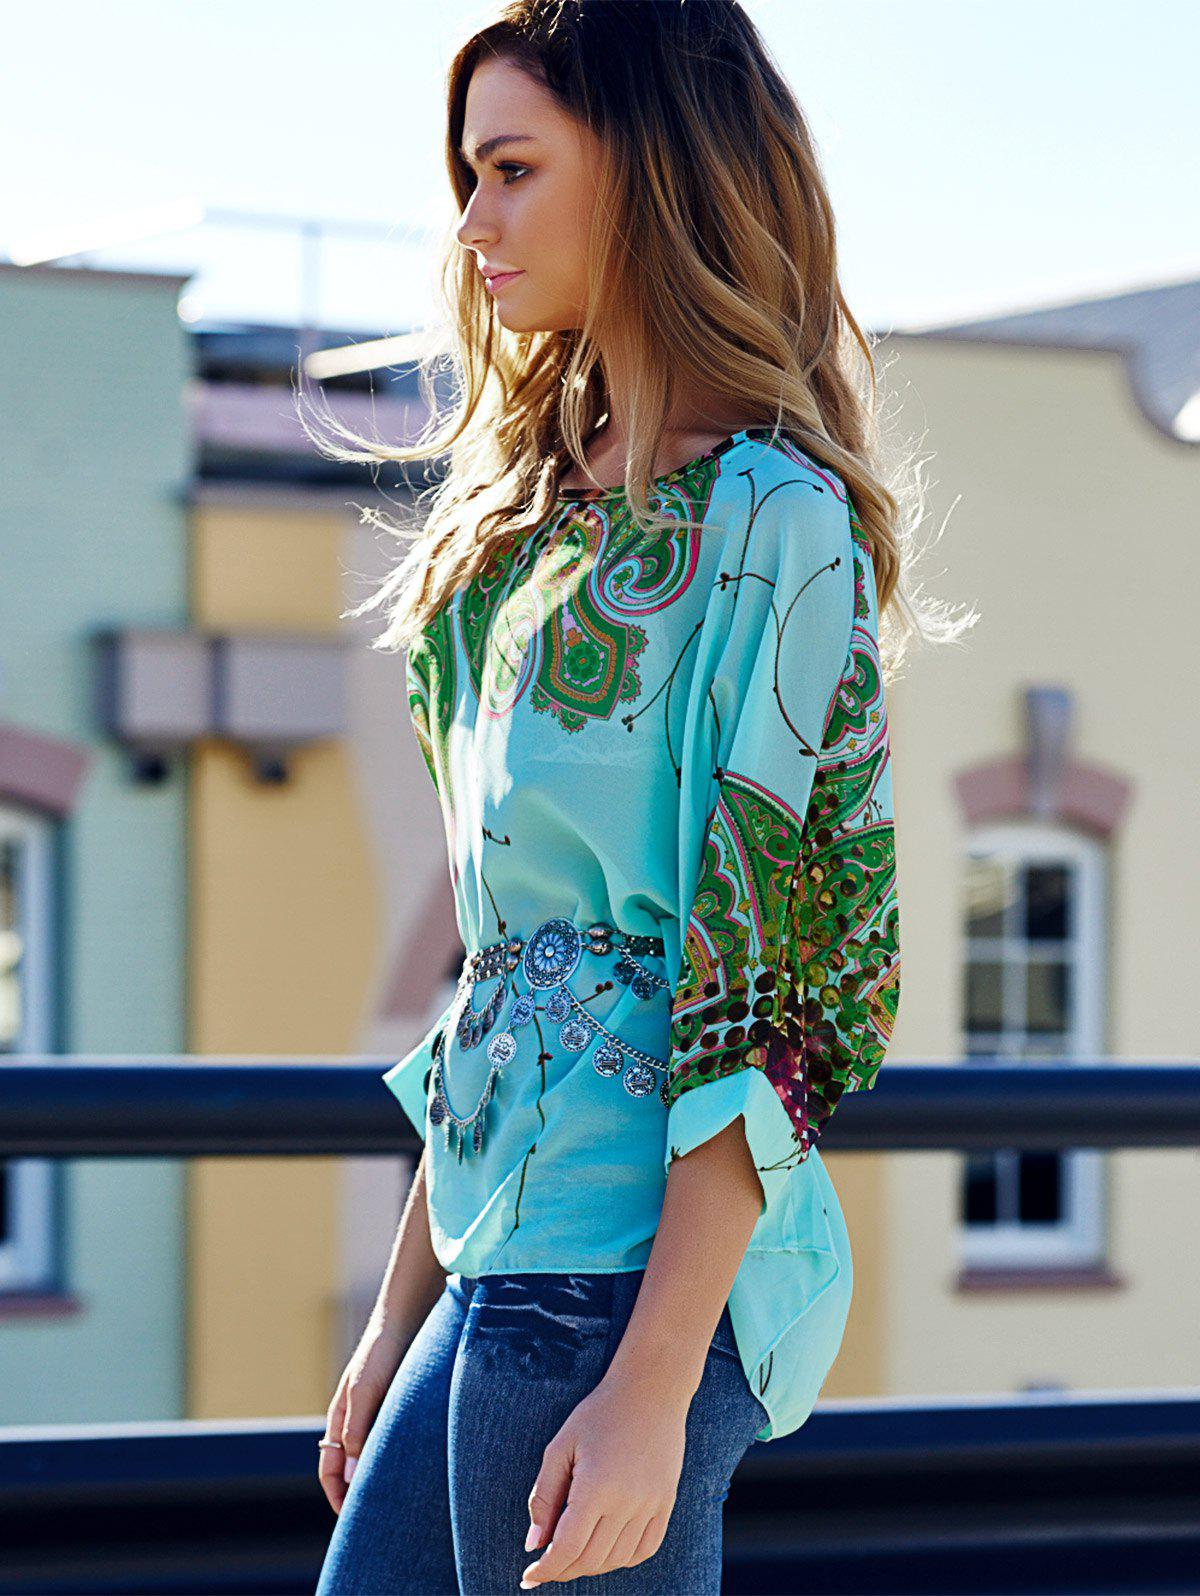 Scoop Neck Batwing Sleeve Printed Loose-Fitting Blouse For Women - COLORMIX XL